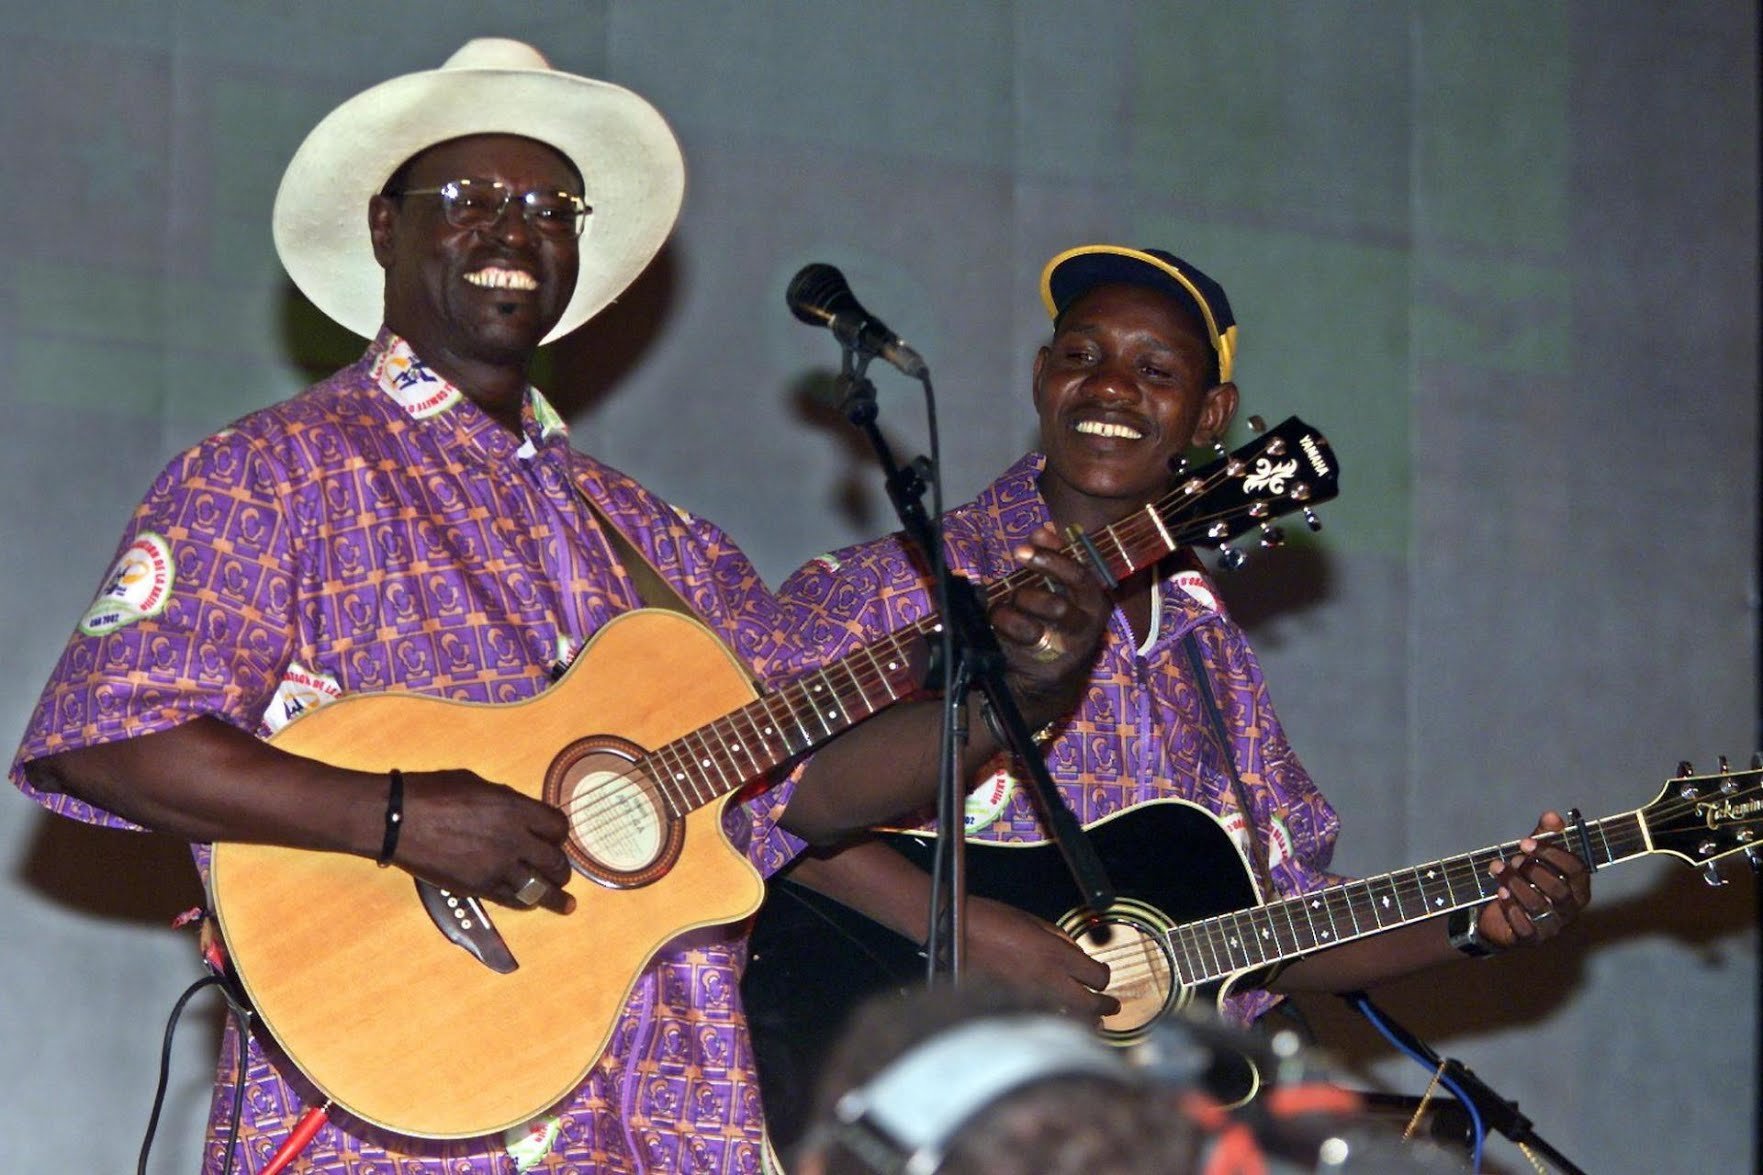 The late Mali's bluesman Ali Farka Toure (left) whom Bamba claims had played at his house when very young. Photo: Seyllou Diallo/AFP